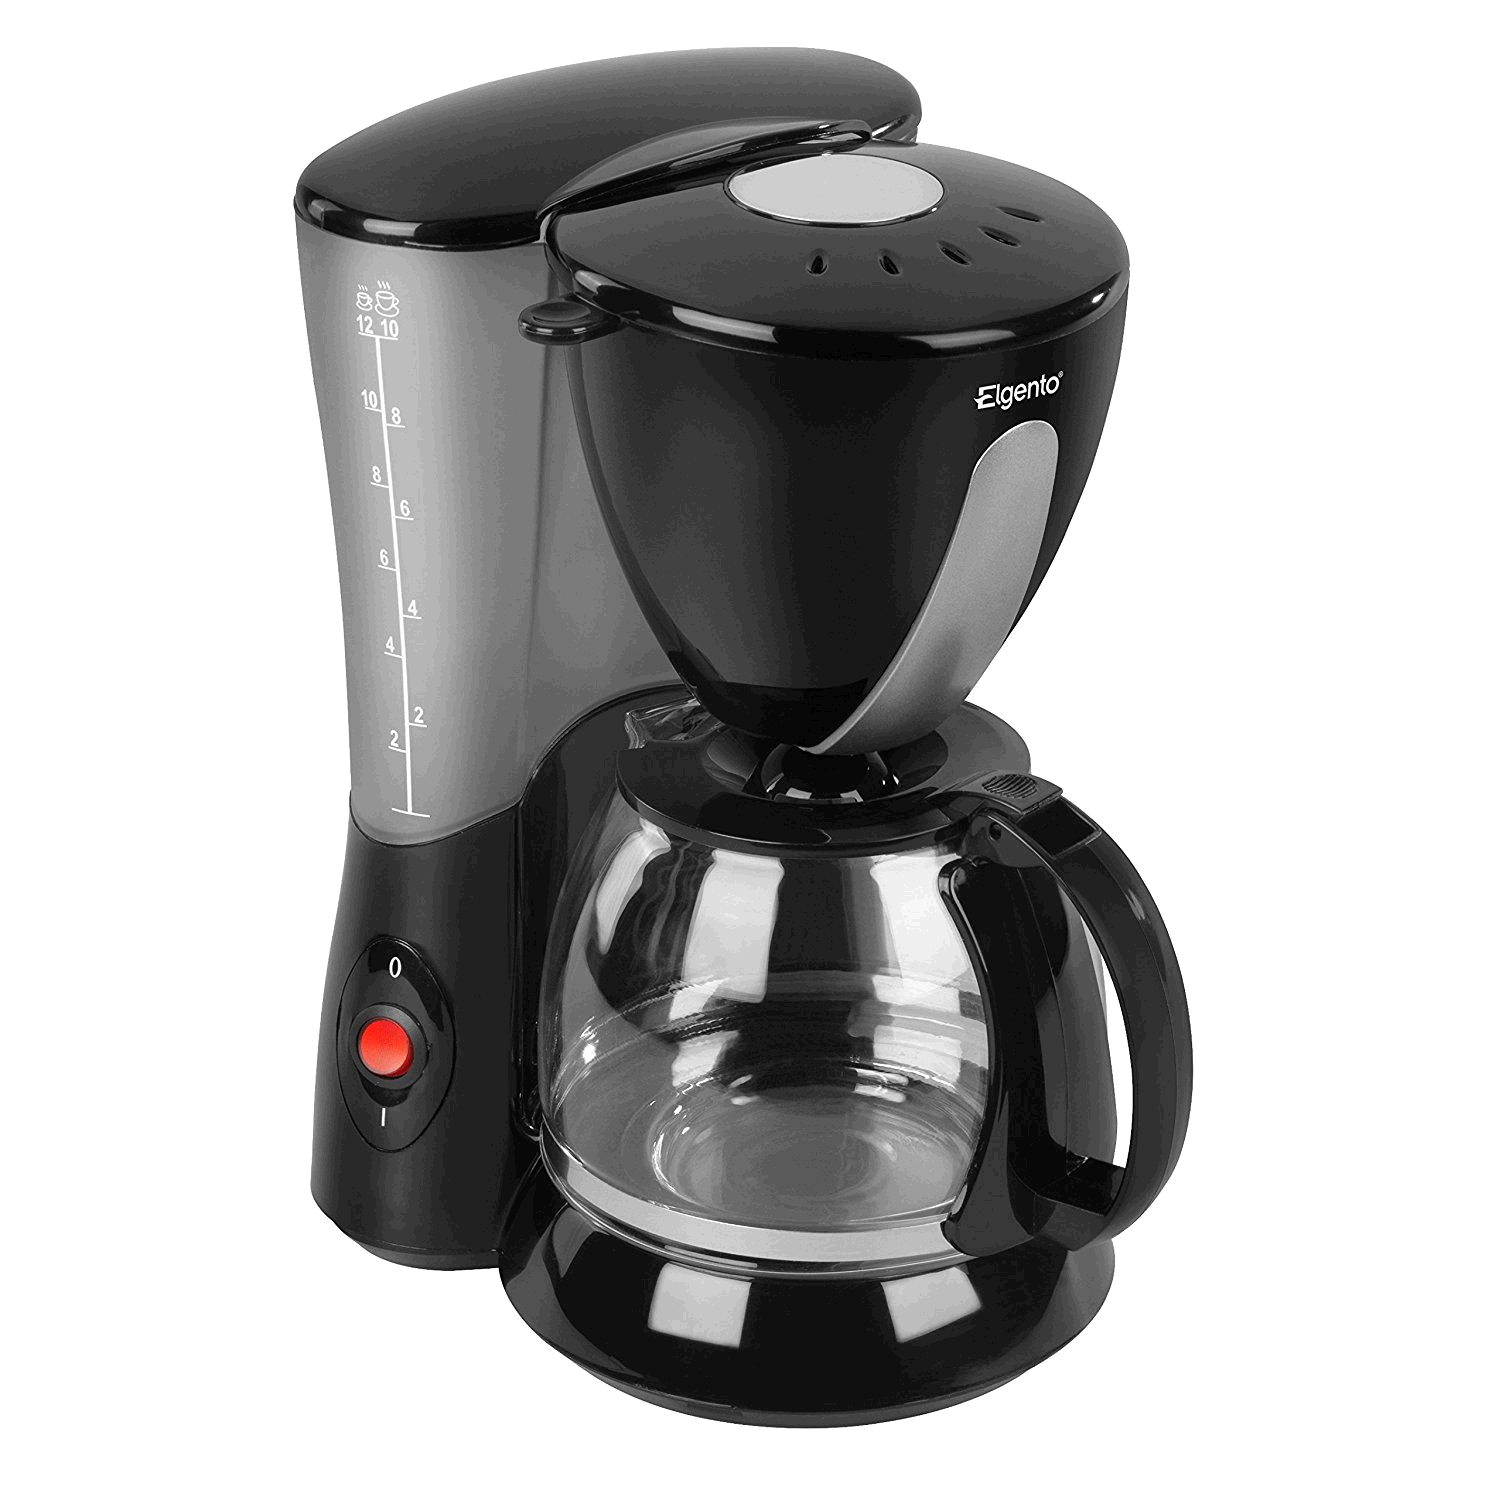 Elgento E13007 10 Cup Coffee Maker, Anti-Drip Feature, 750 W, Black